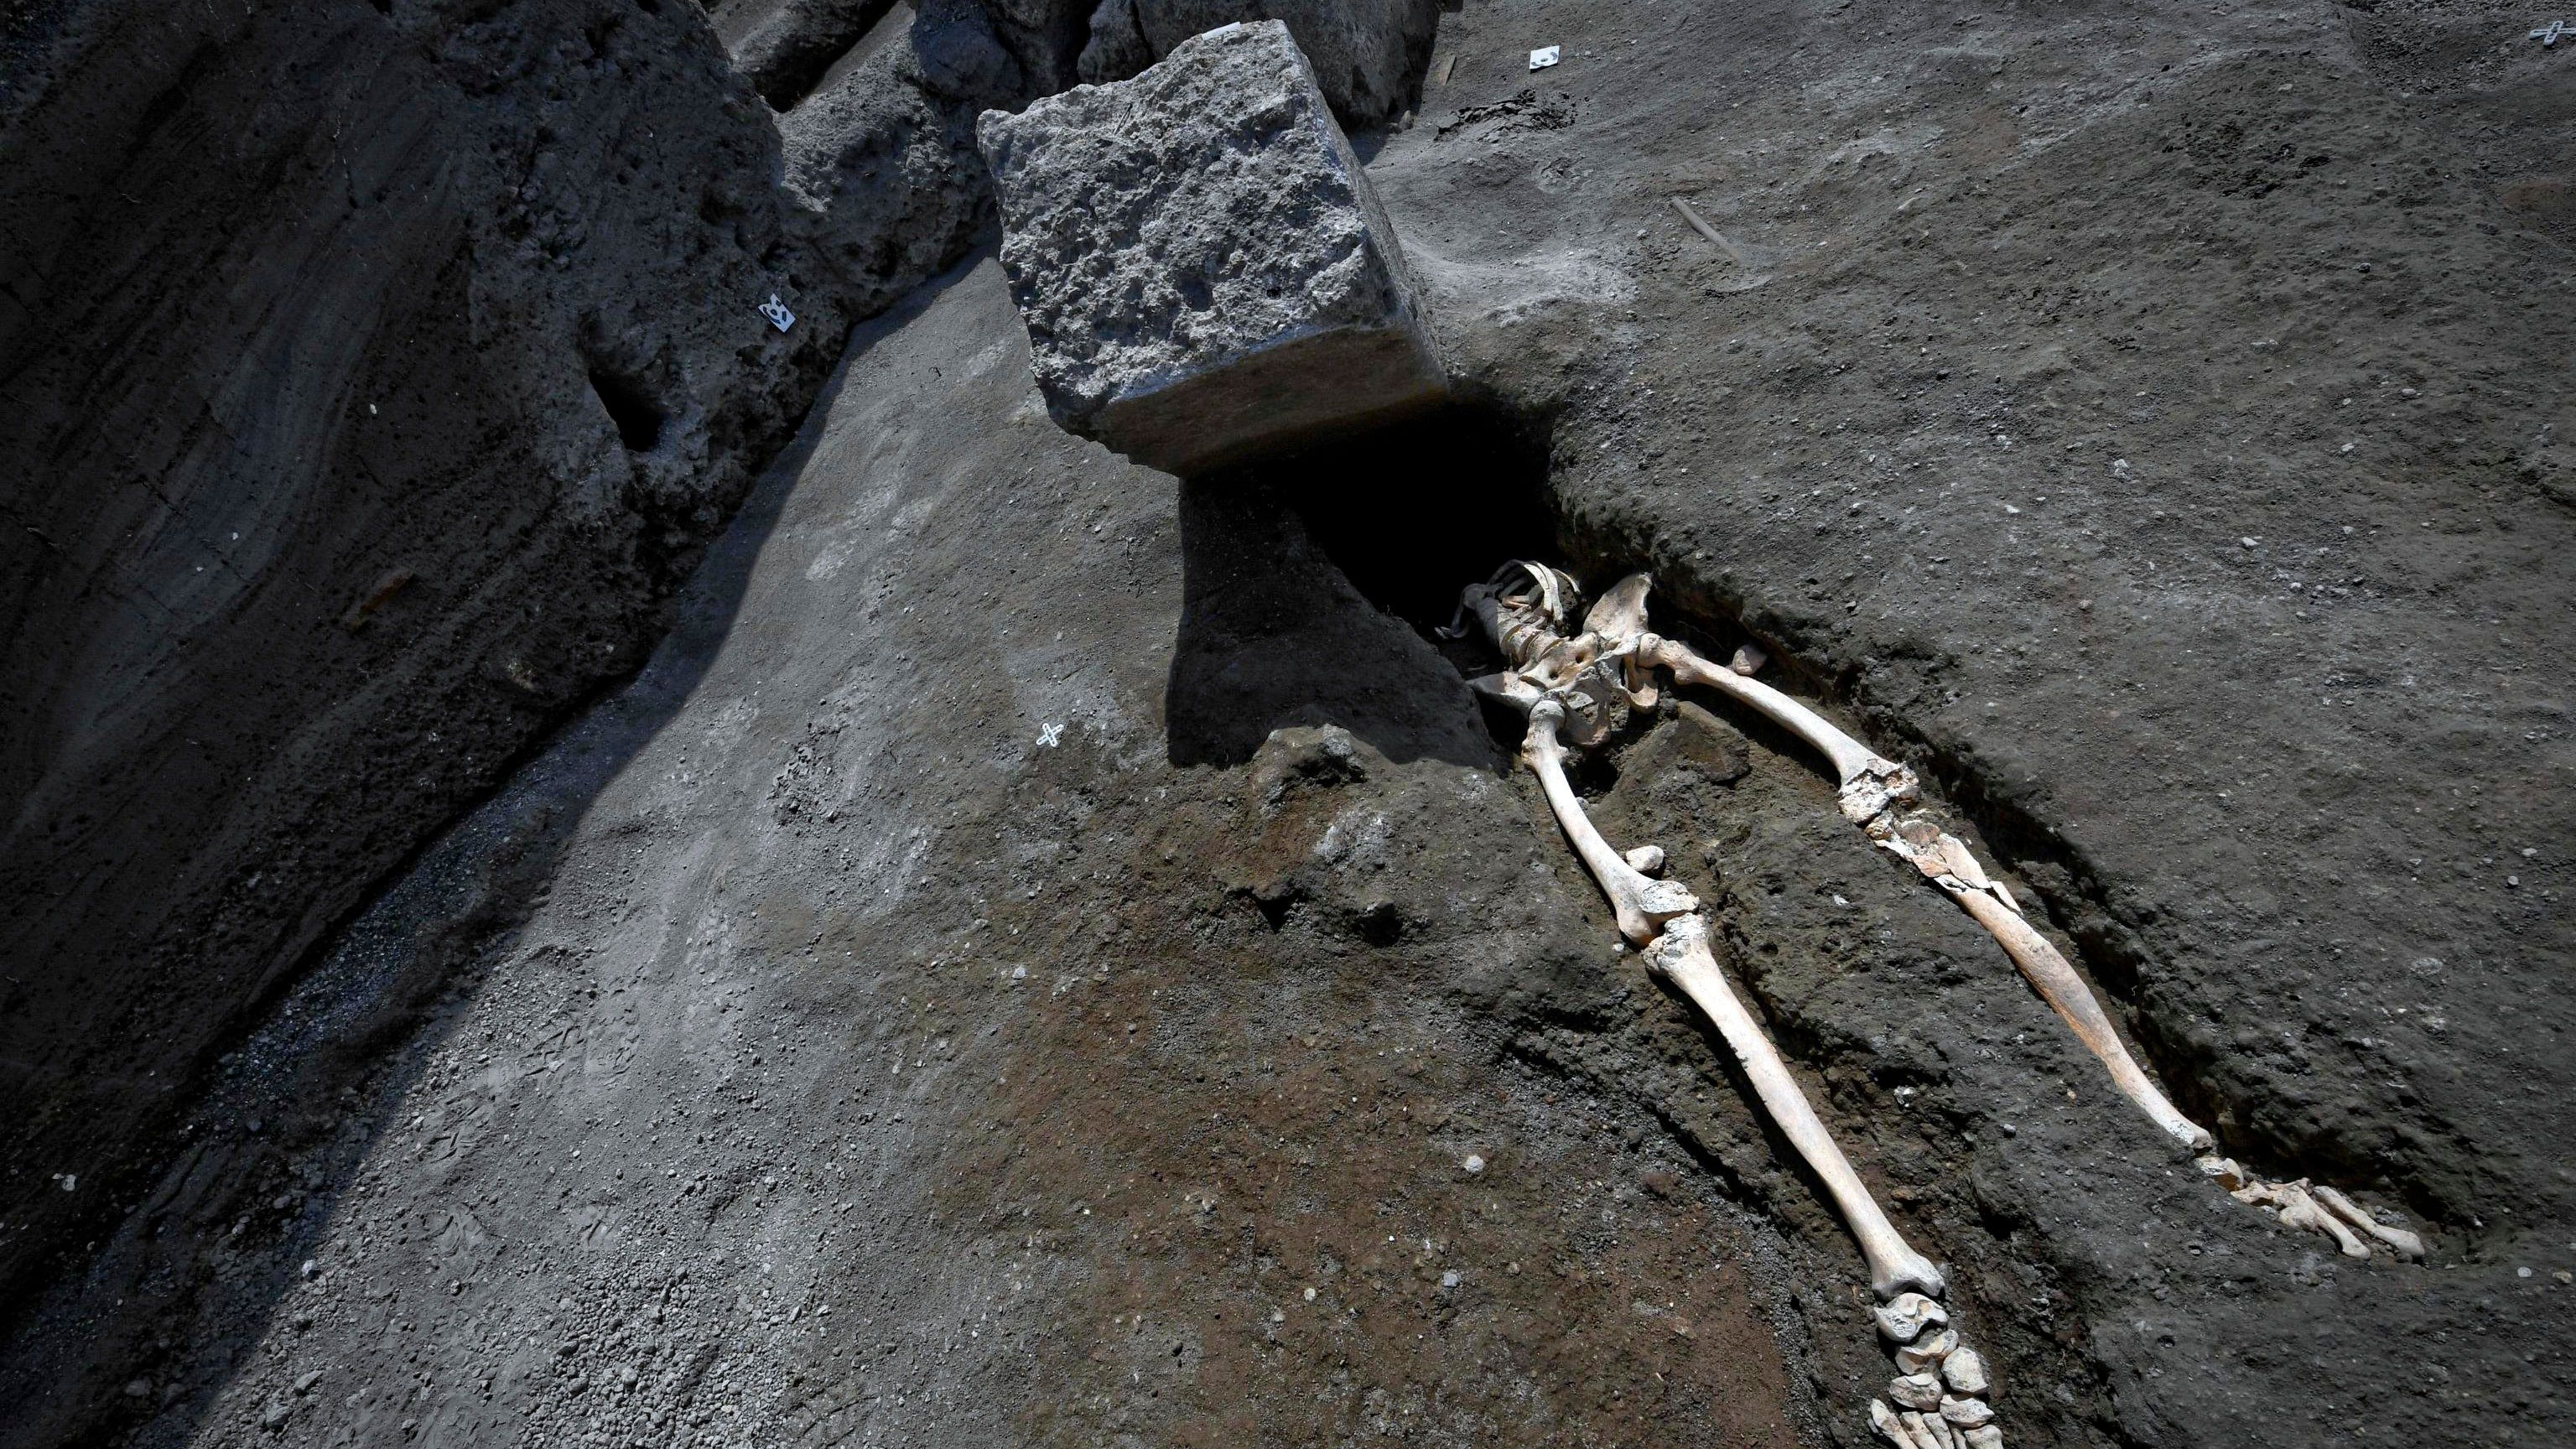 The Latest Pompeii Skeleton Find Is Doubly